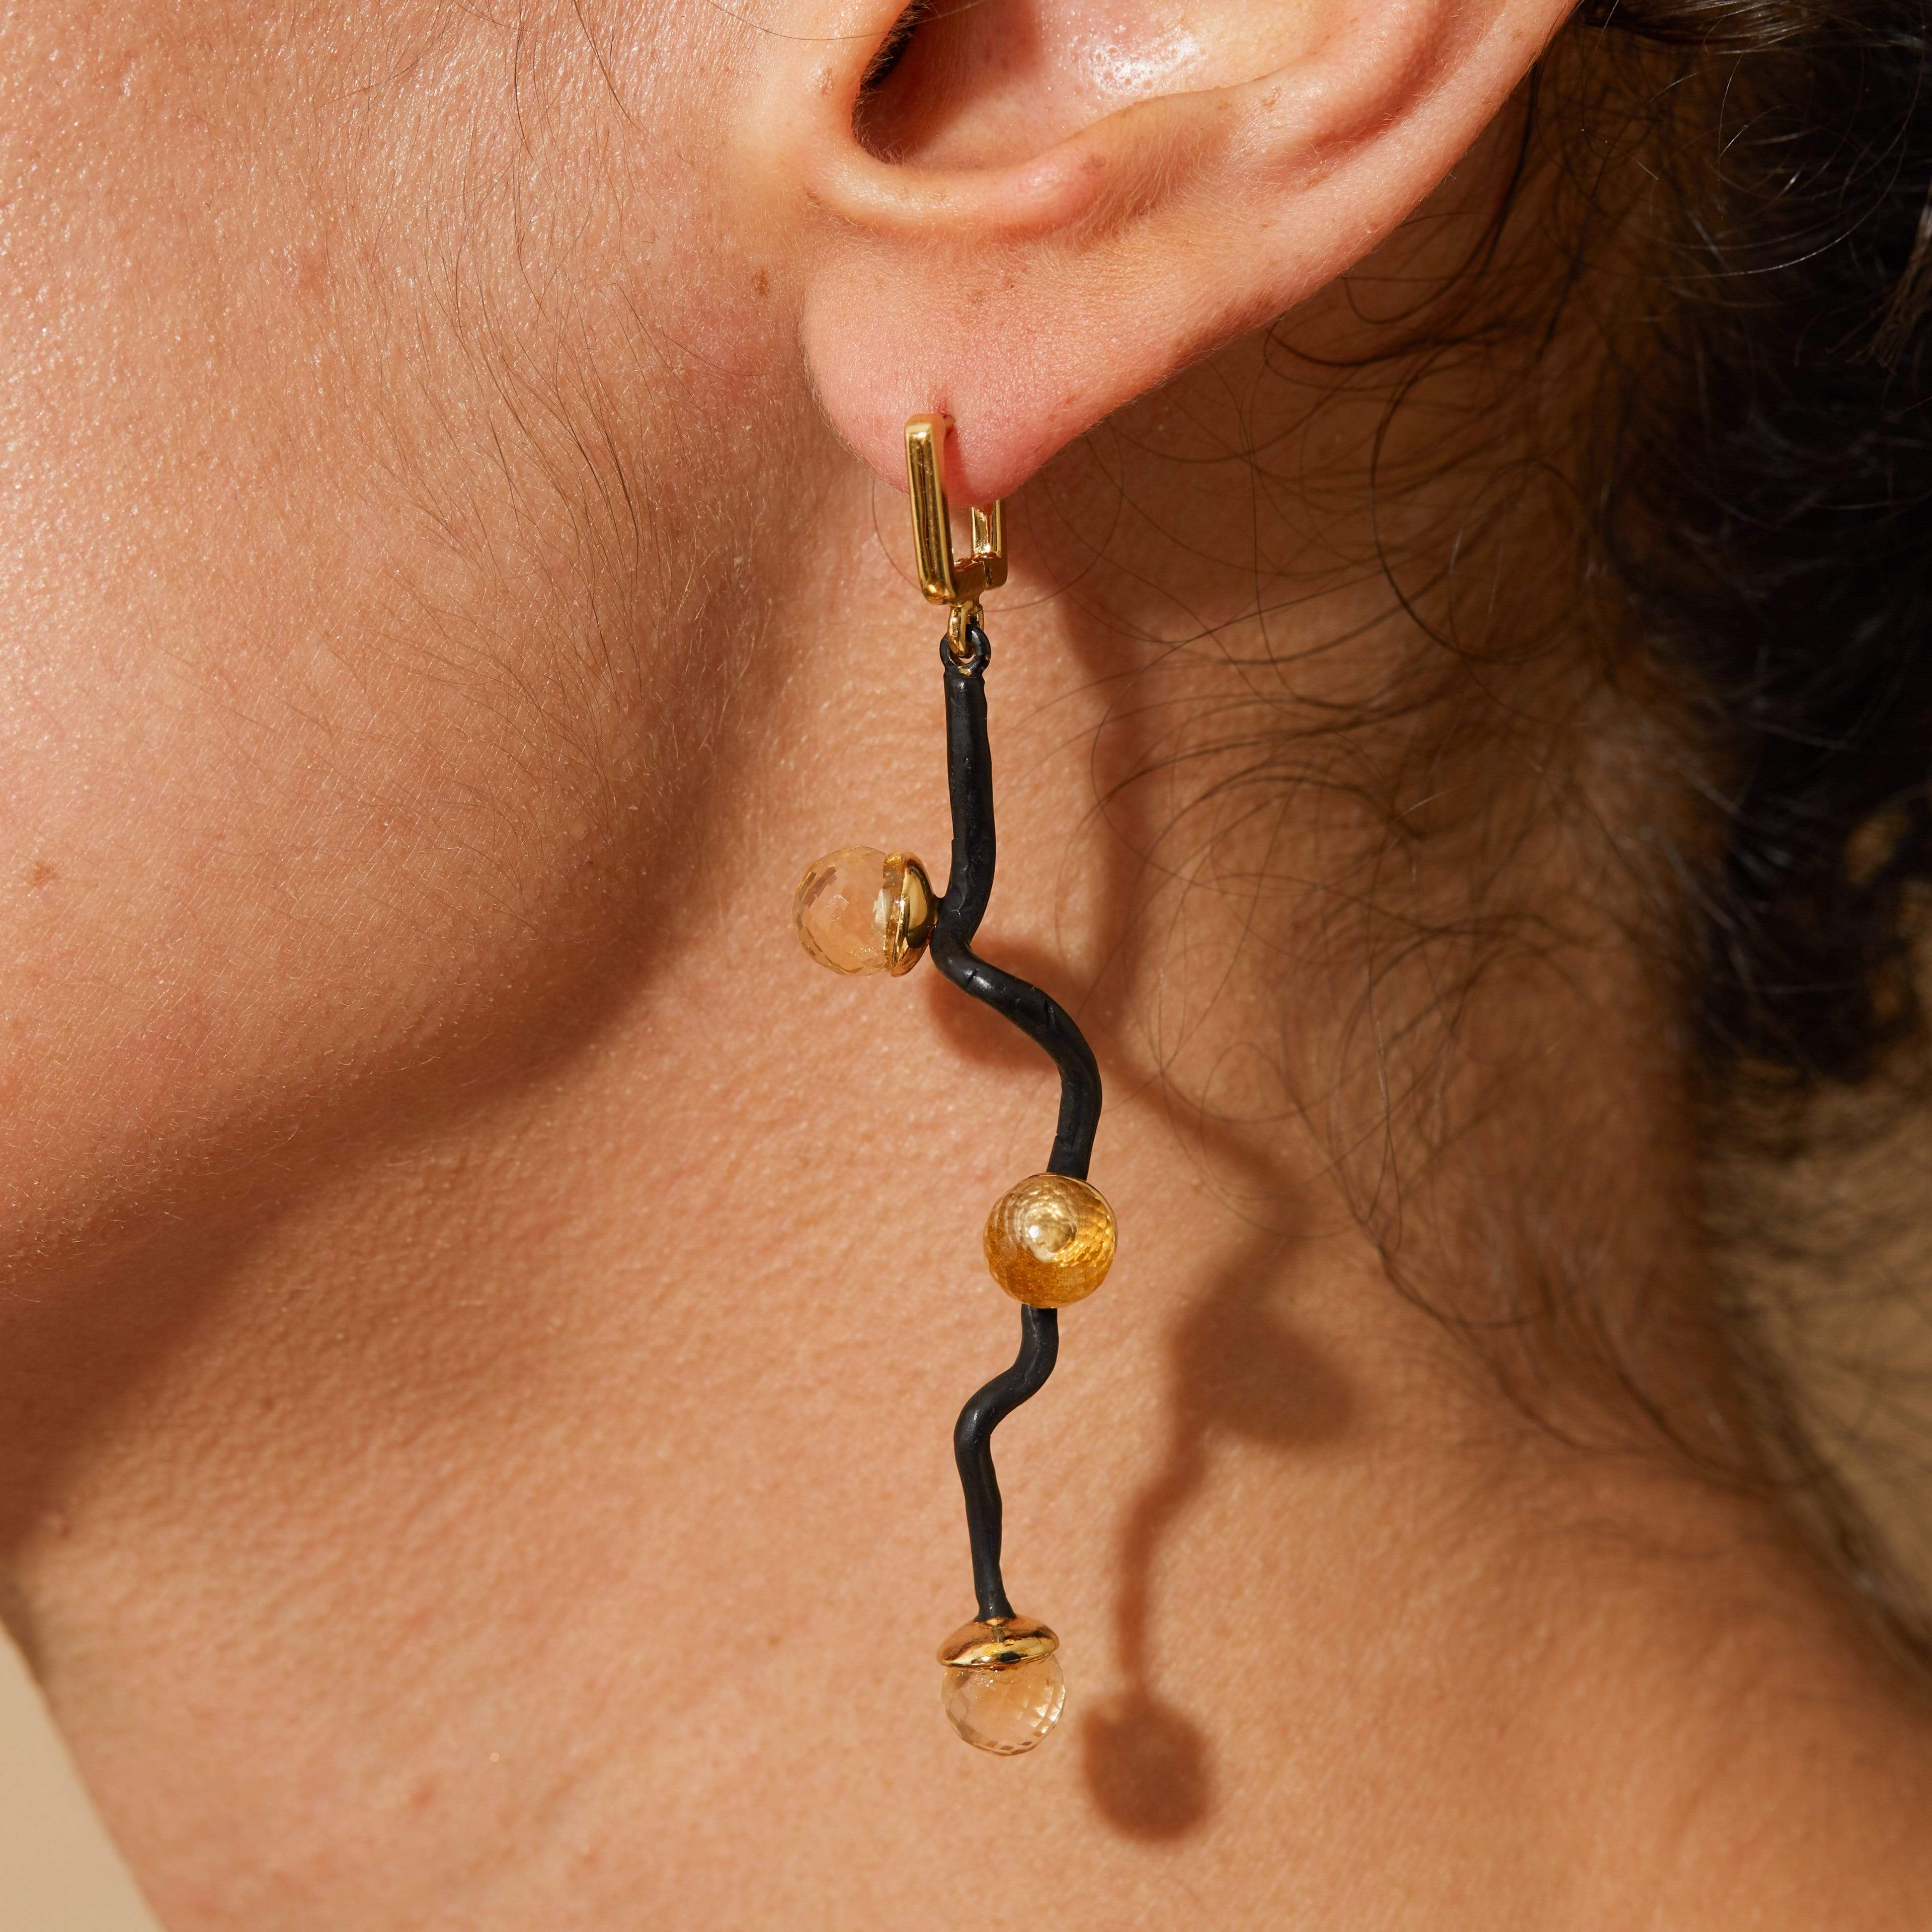 Calyxa Earrings, Amethyst, Anthracite, black, Citrine, Gold, Serial, spo-disabled, StoneColor:MixedColor Earrings